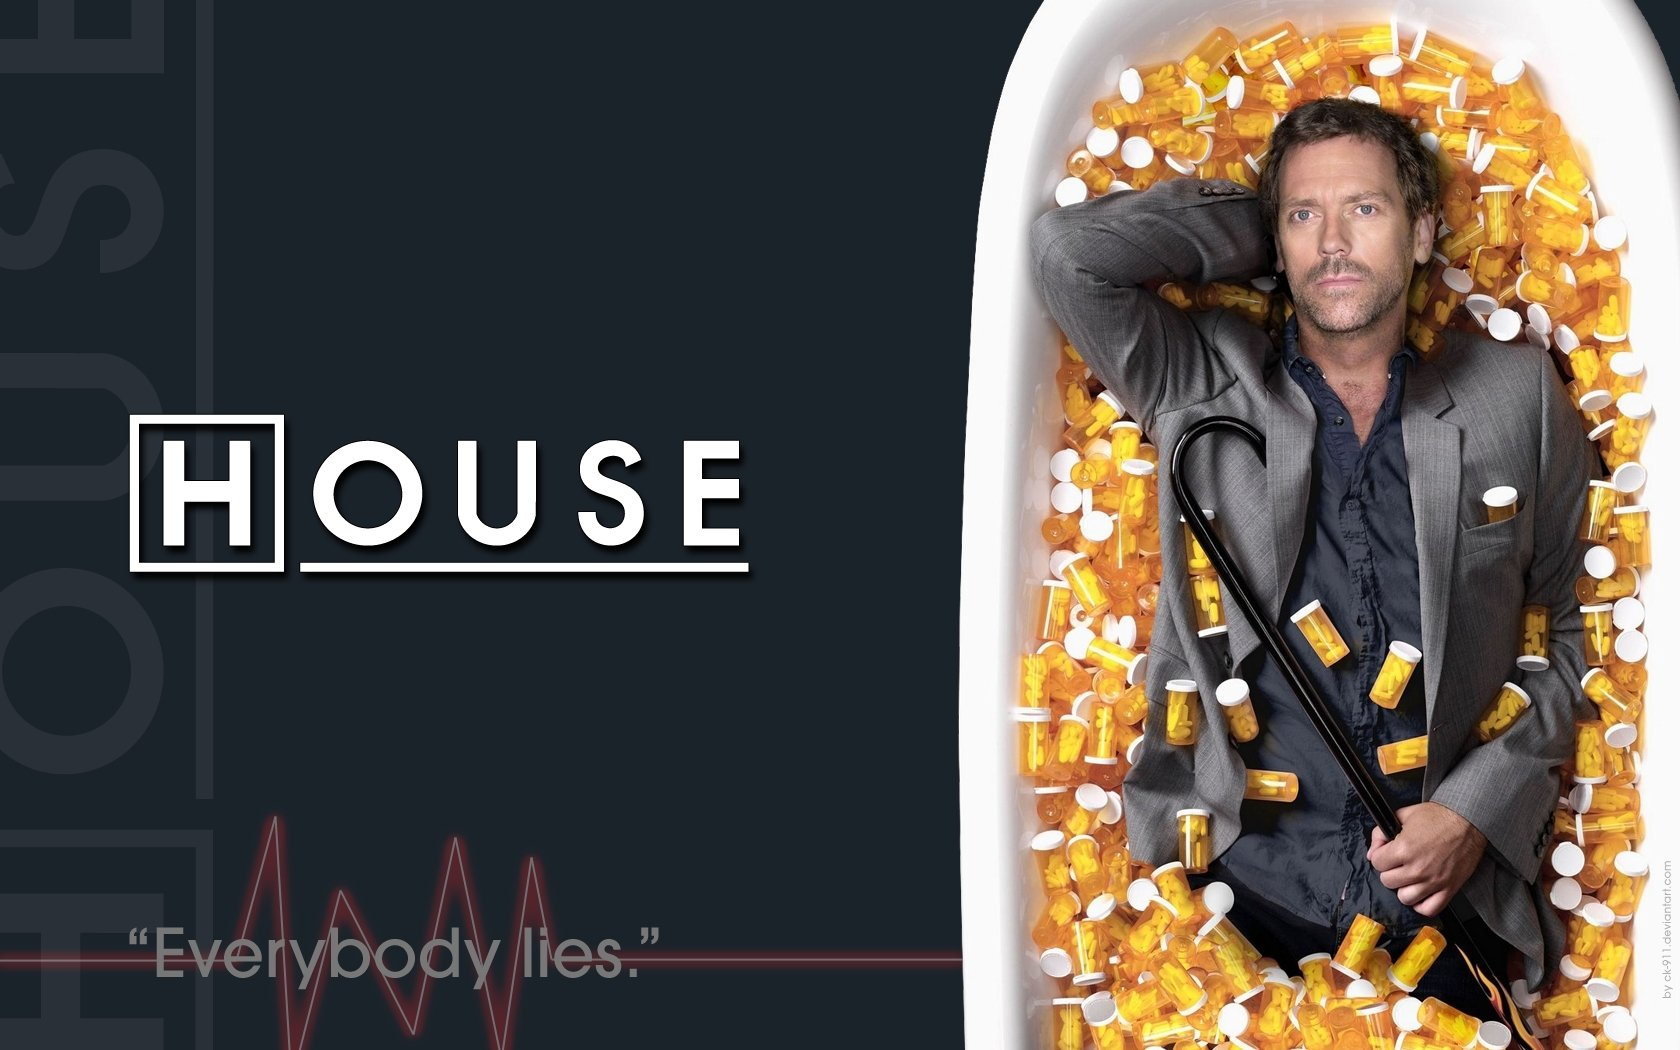 62 gregory house hd wallpapers